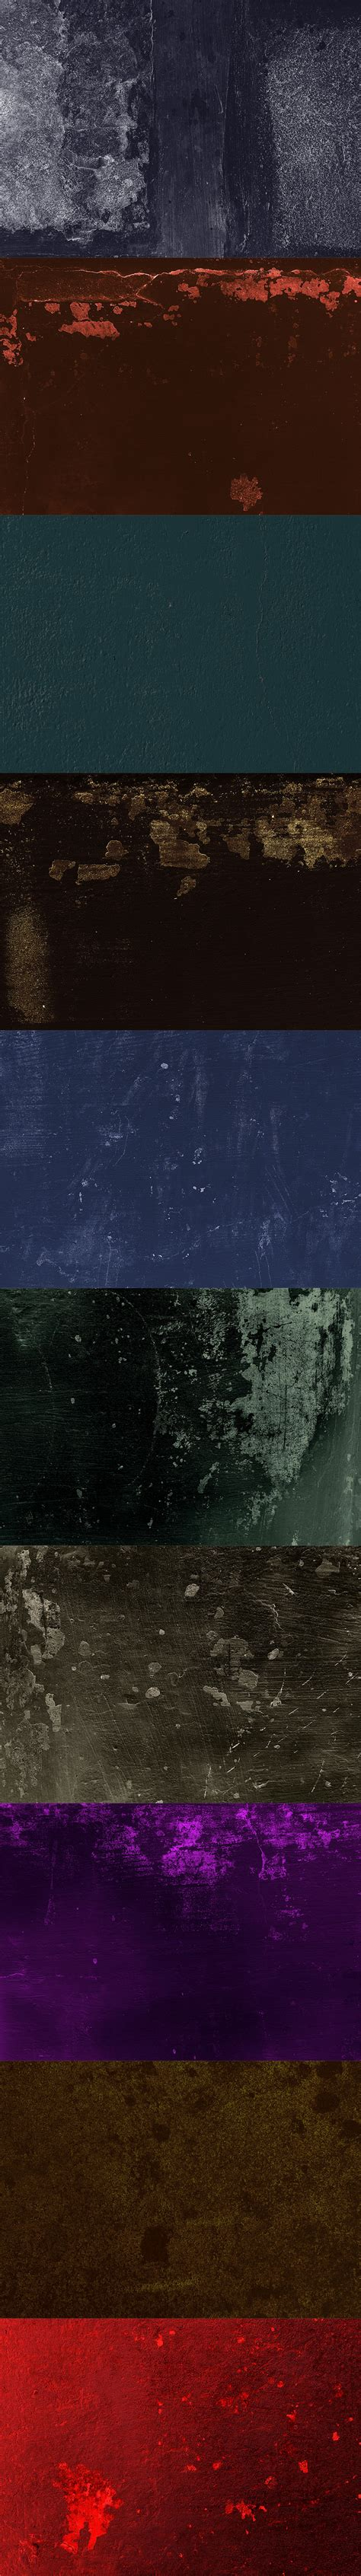 dramatic colors dramatic color grunge textures graphicsfuel